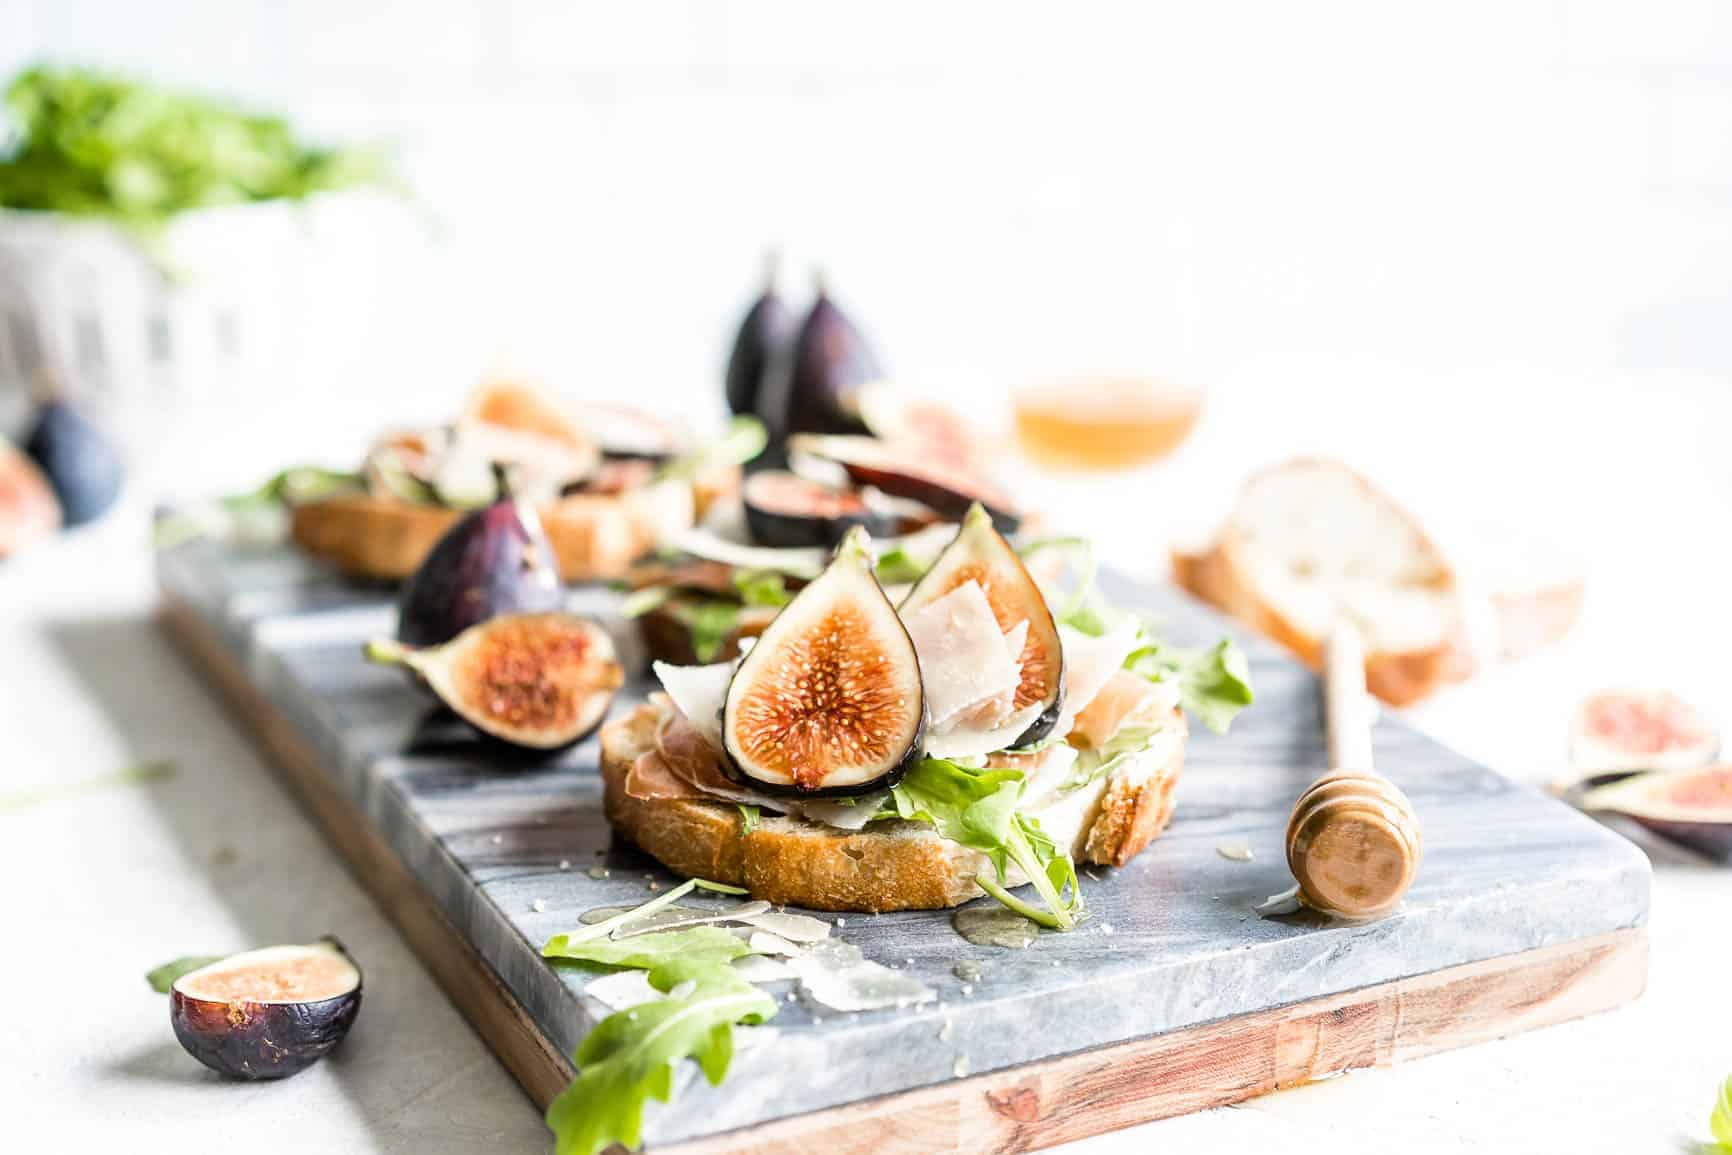 This flavorful Fig Bruschetta is an easy, yet delicious appetizer.It's also perfect for dinner parties, picnics, and any occasion where you want to serve something that is simple yet sophisticated.Toasted bread rubbed with garlic, topped with fresh figs, prosciutto, arugula and features Copper Kettle Cheese, drizzled with honey